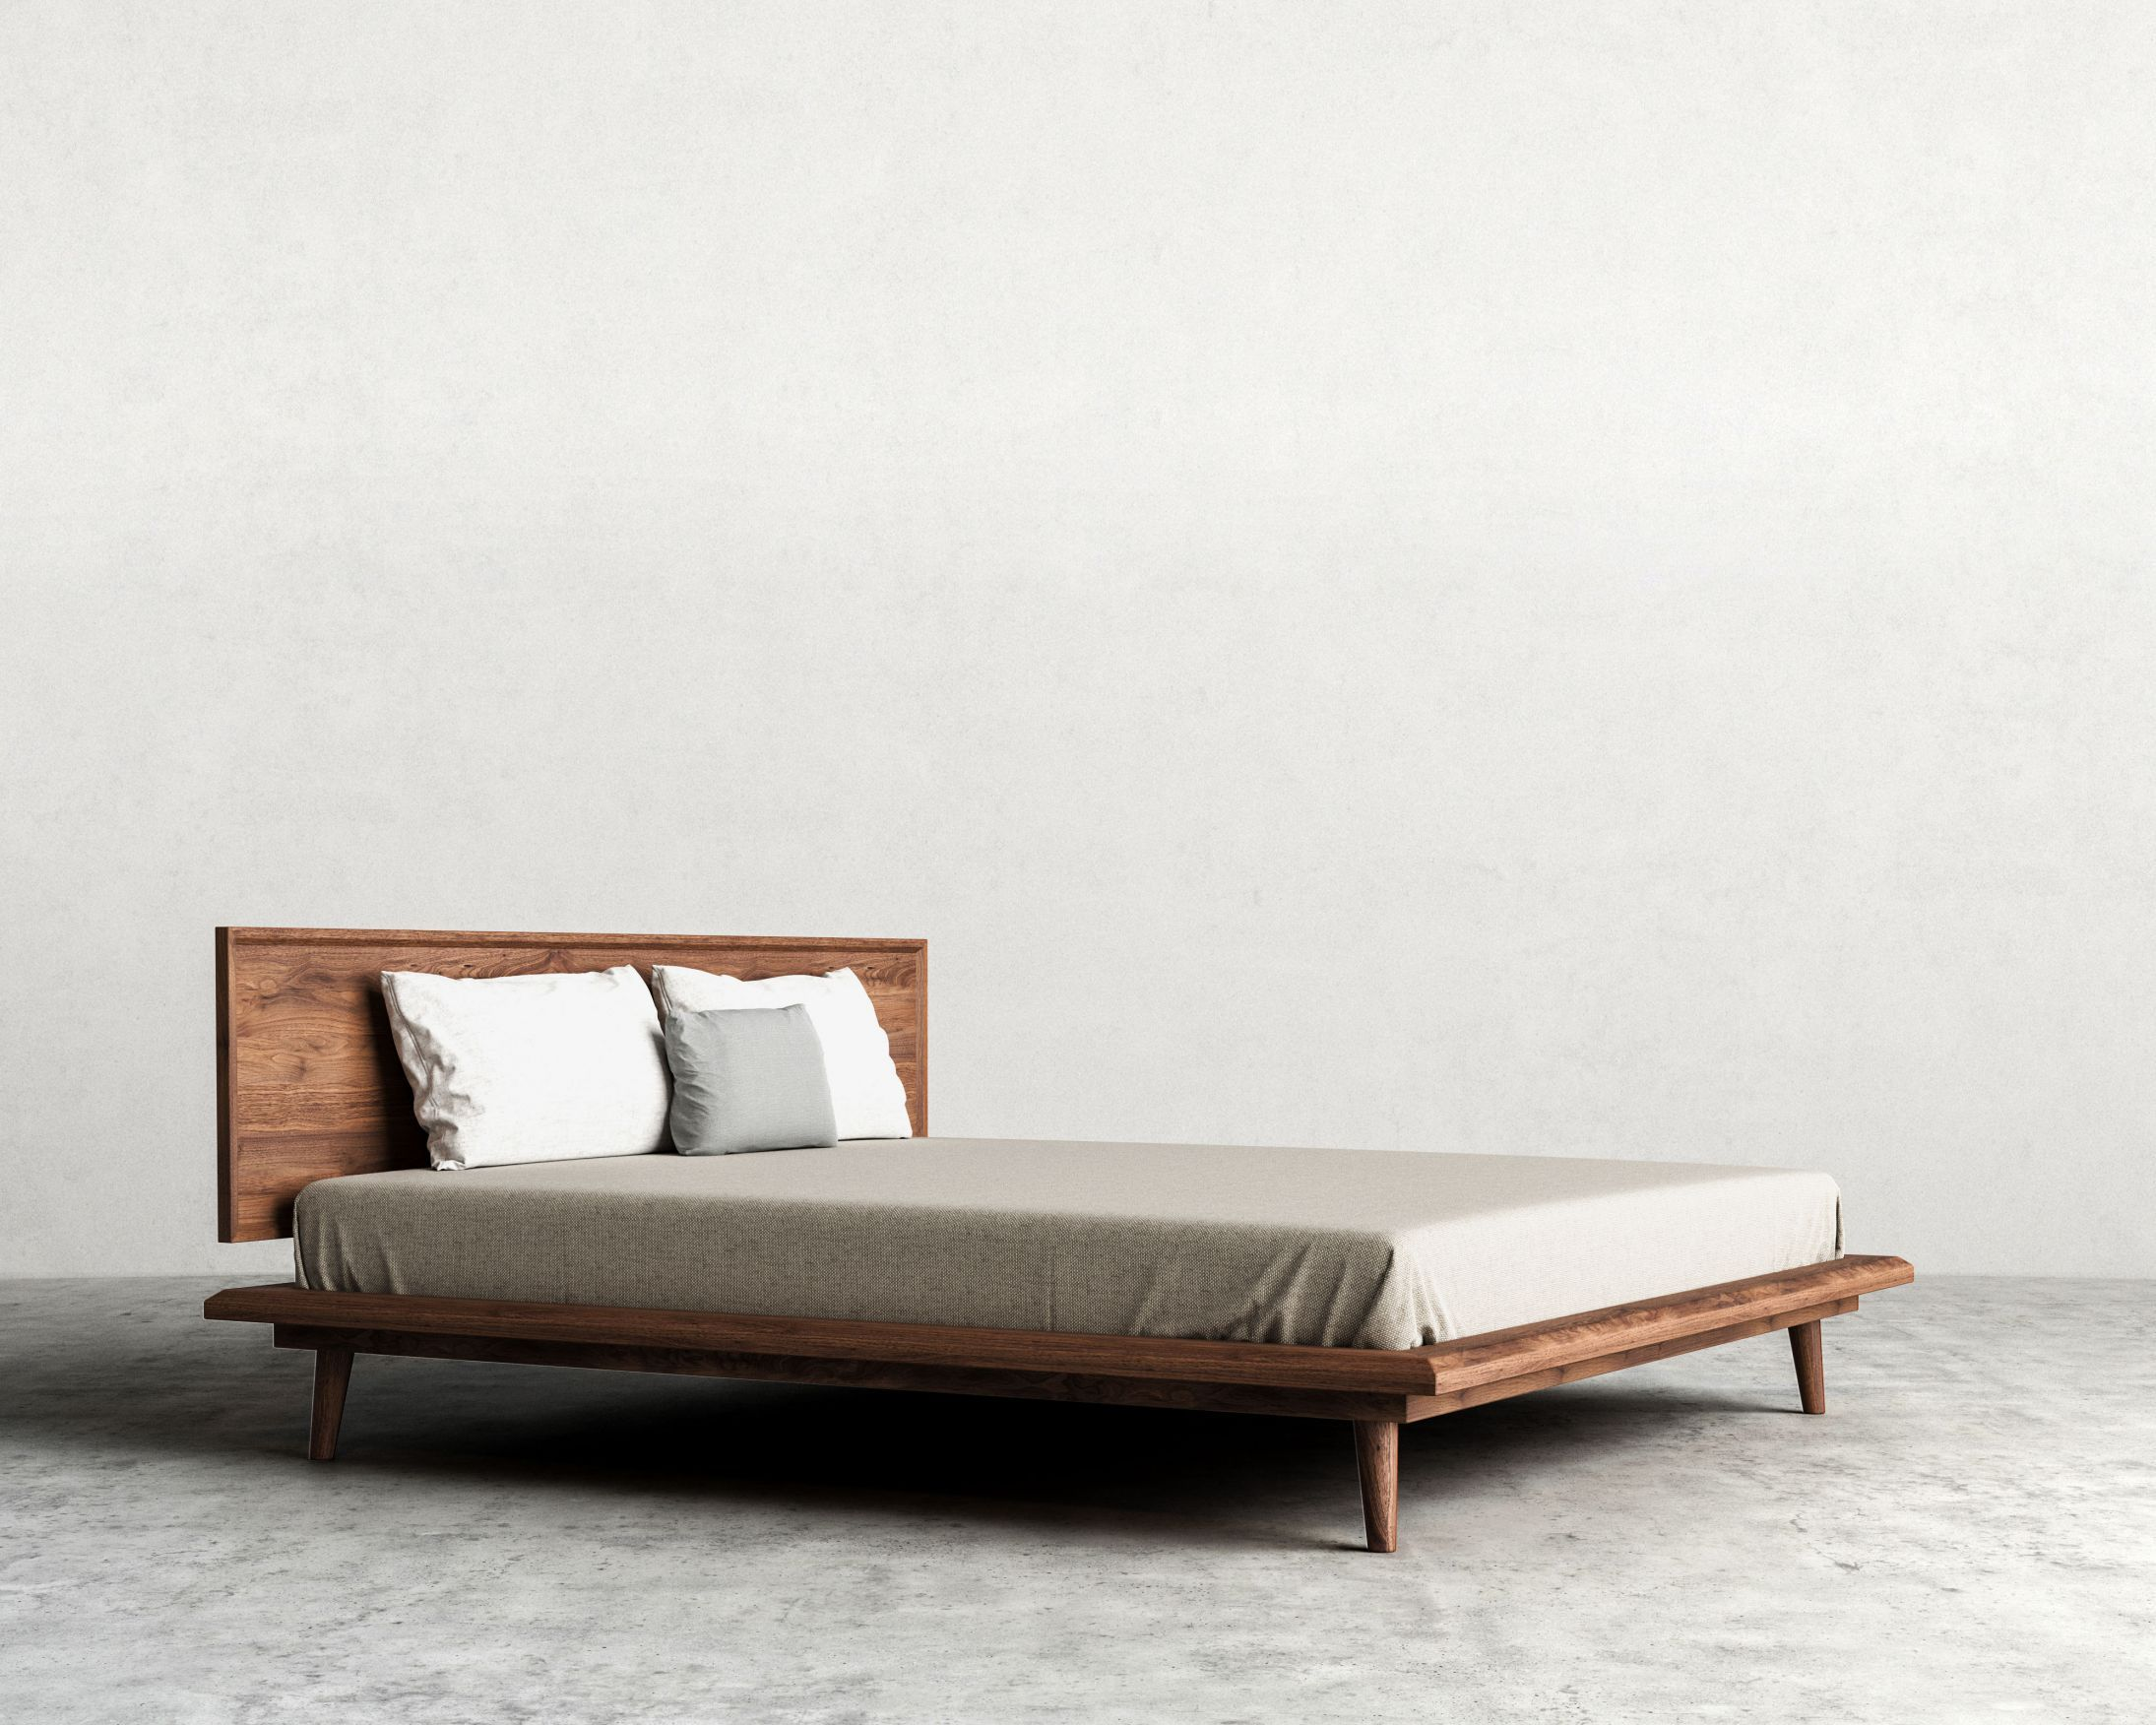 Superior Mid Century Modern Bed | Rove Concepts $1,900 Has Center Post